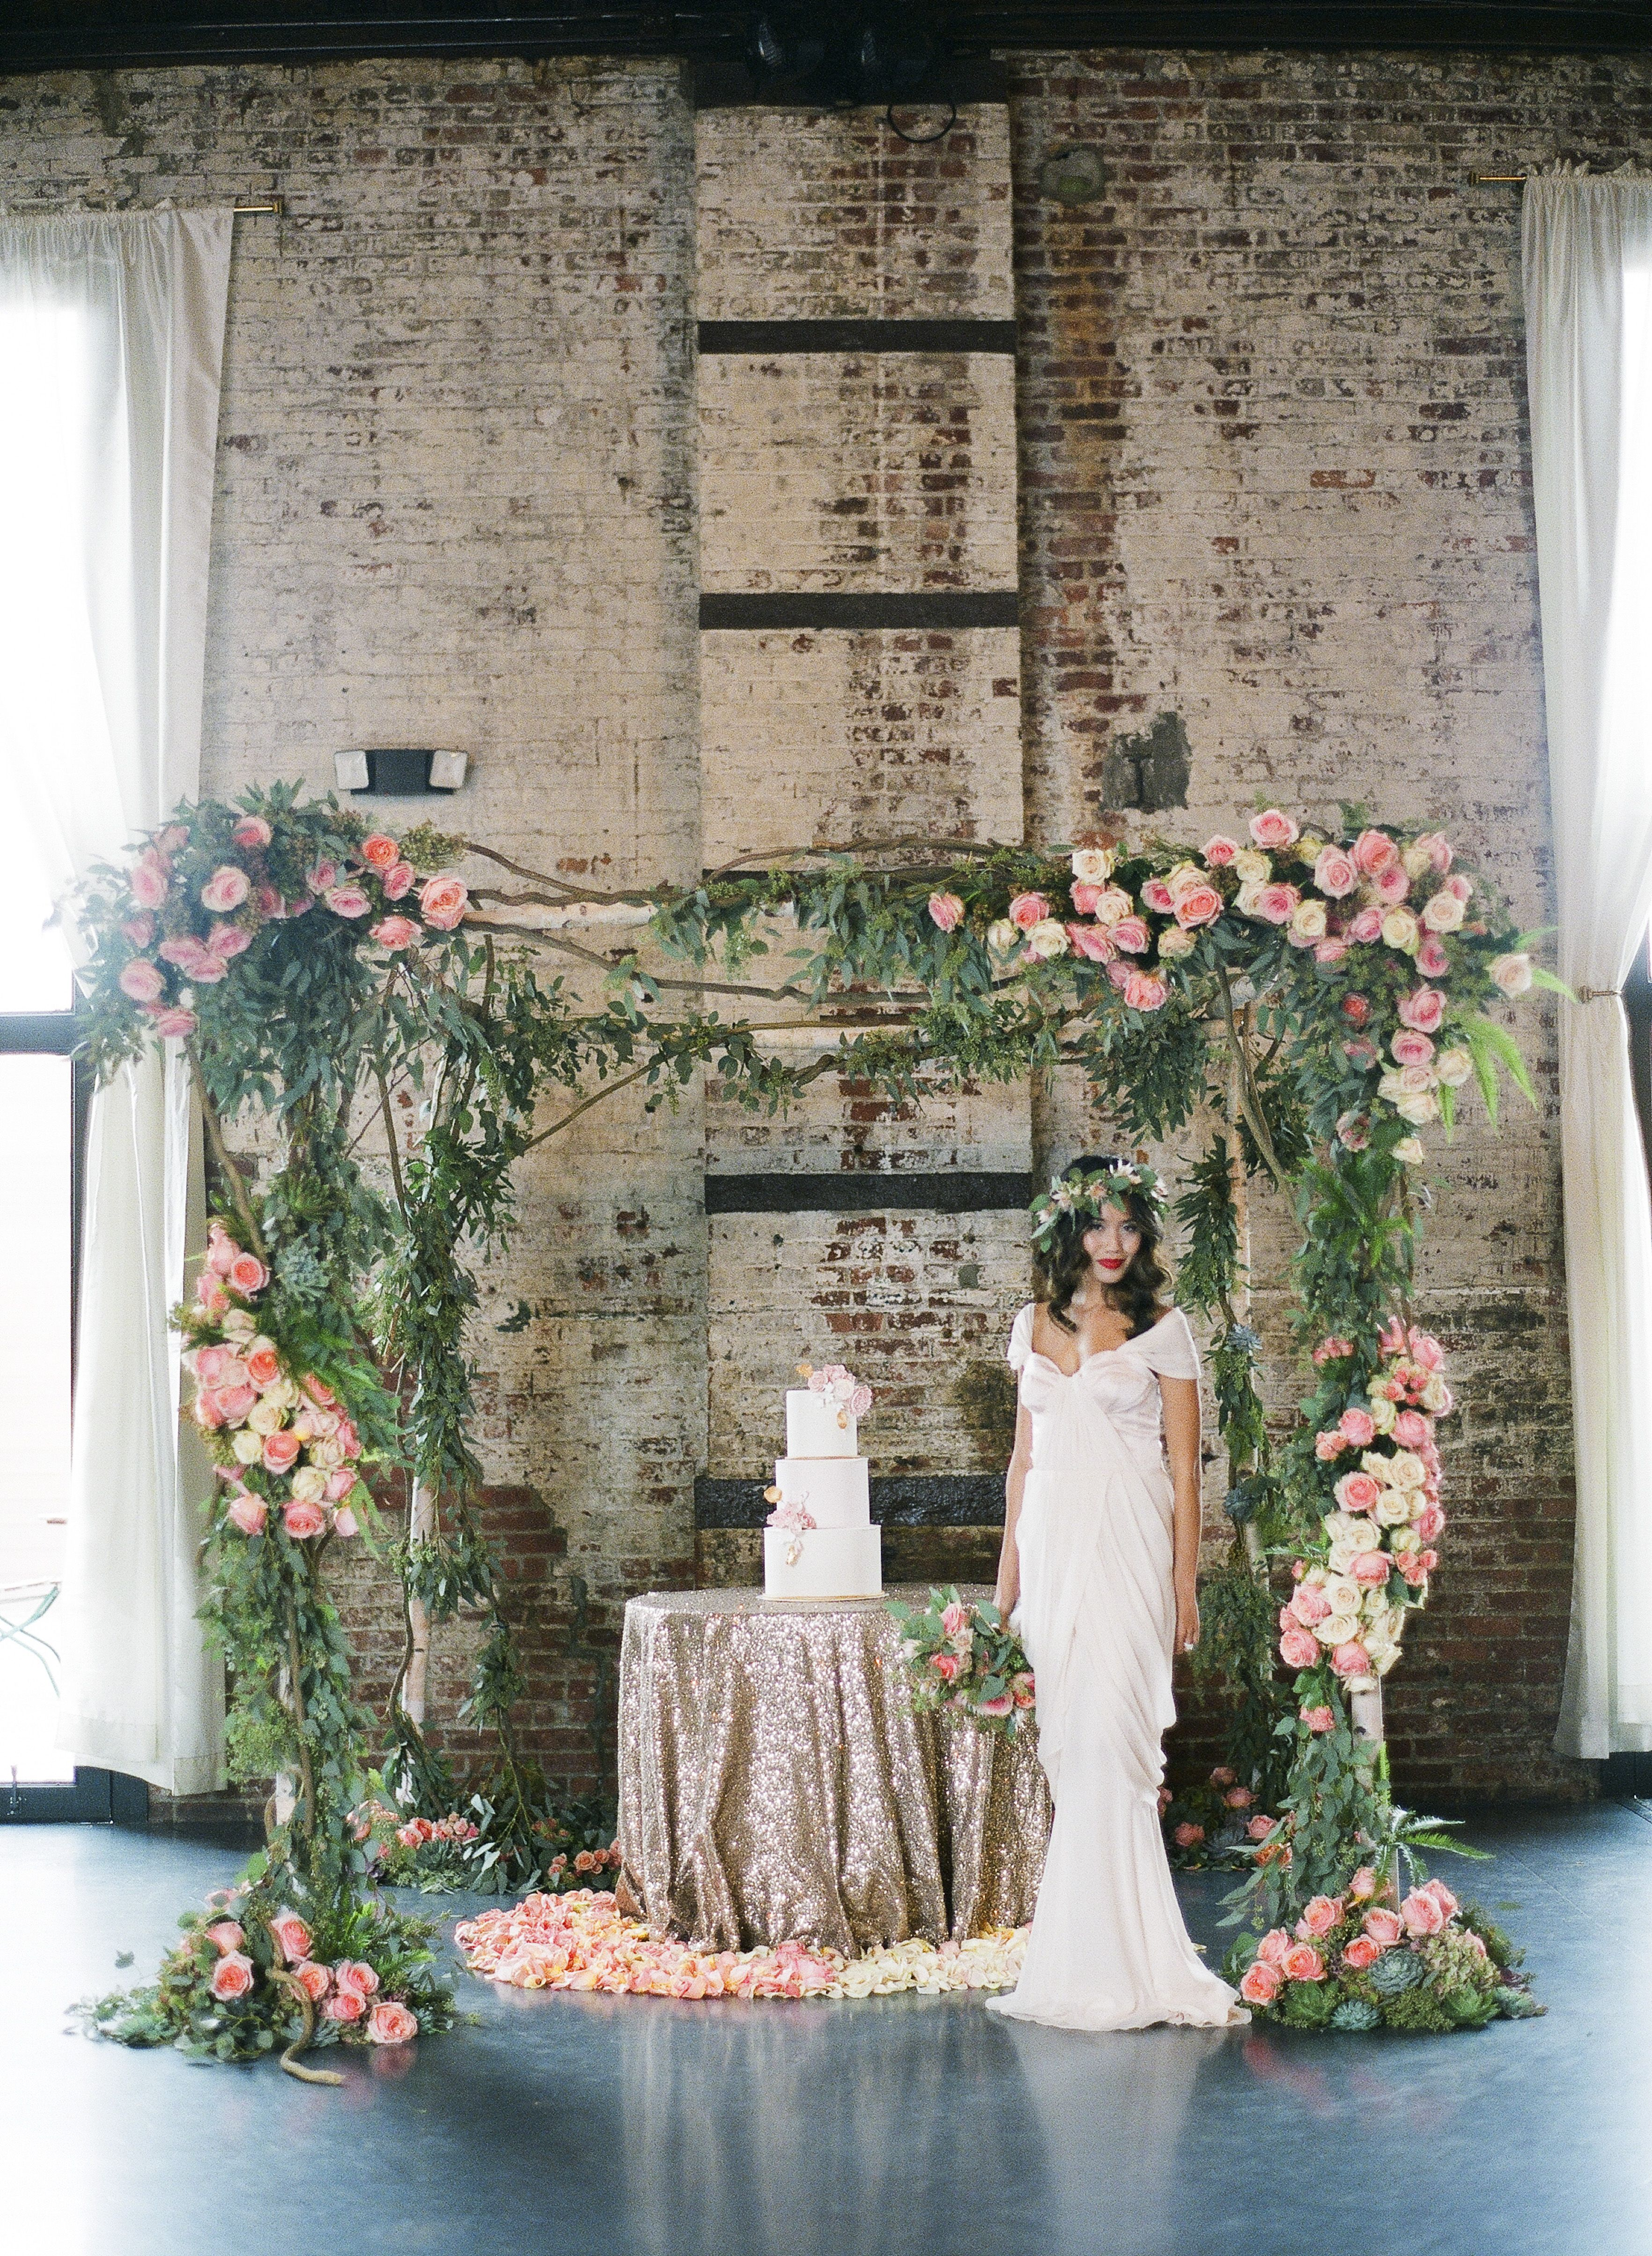 White Birch Chuppah Rental Twoofakindrentals In Brooklyn New